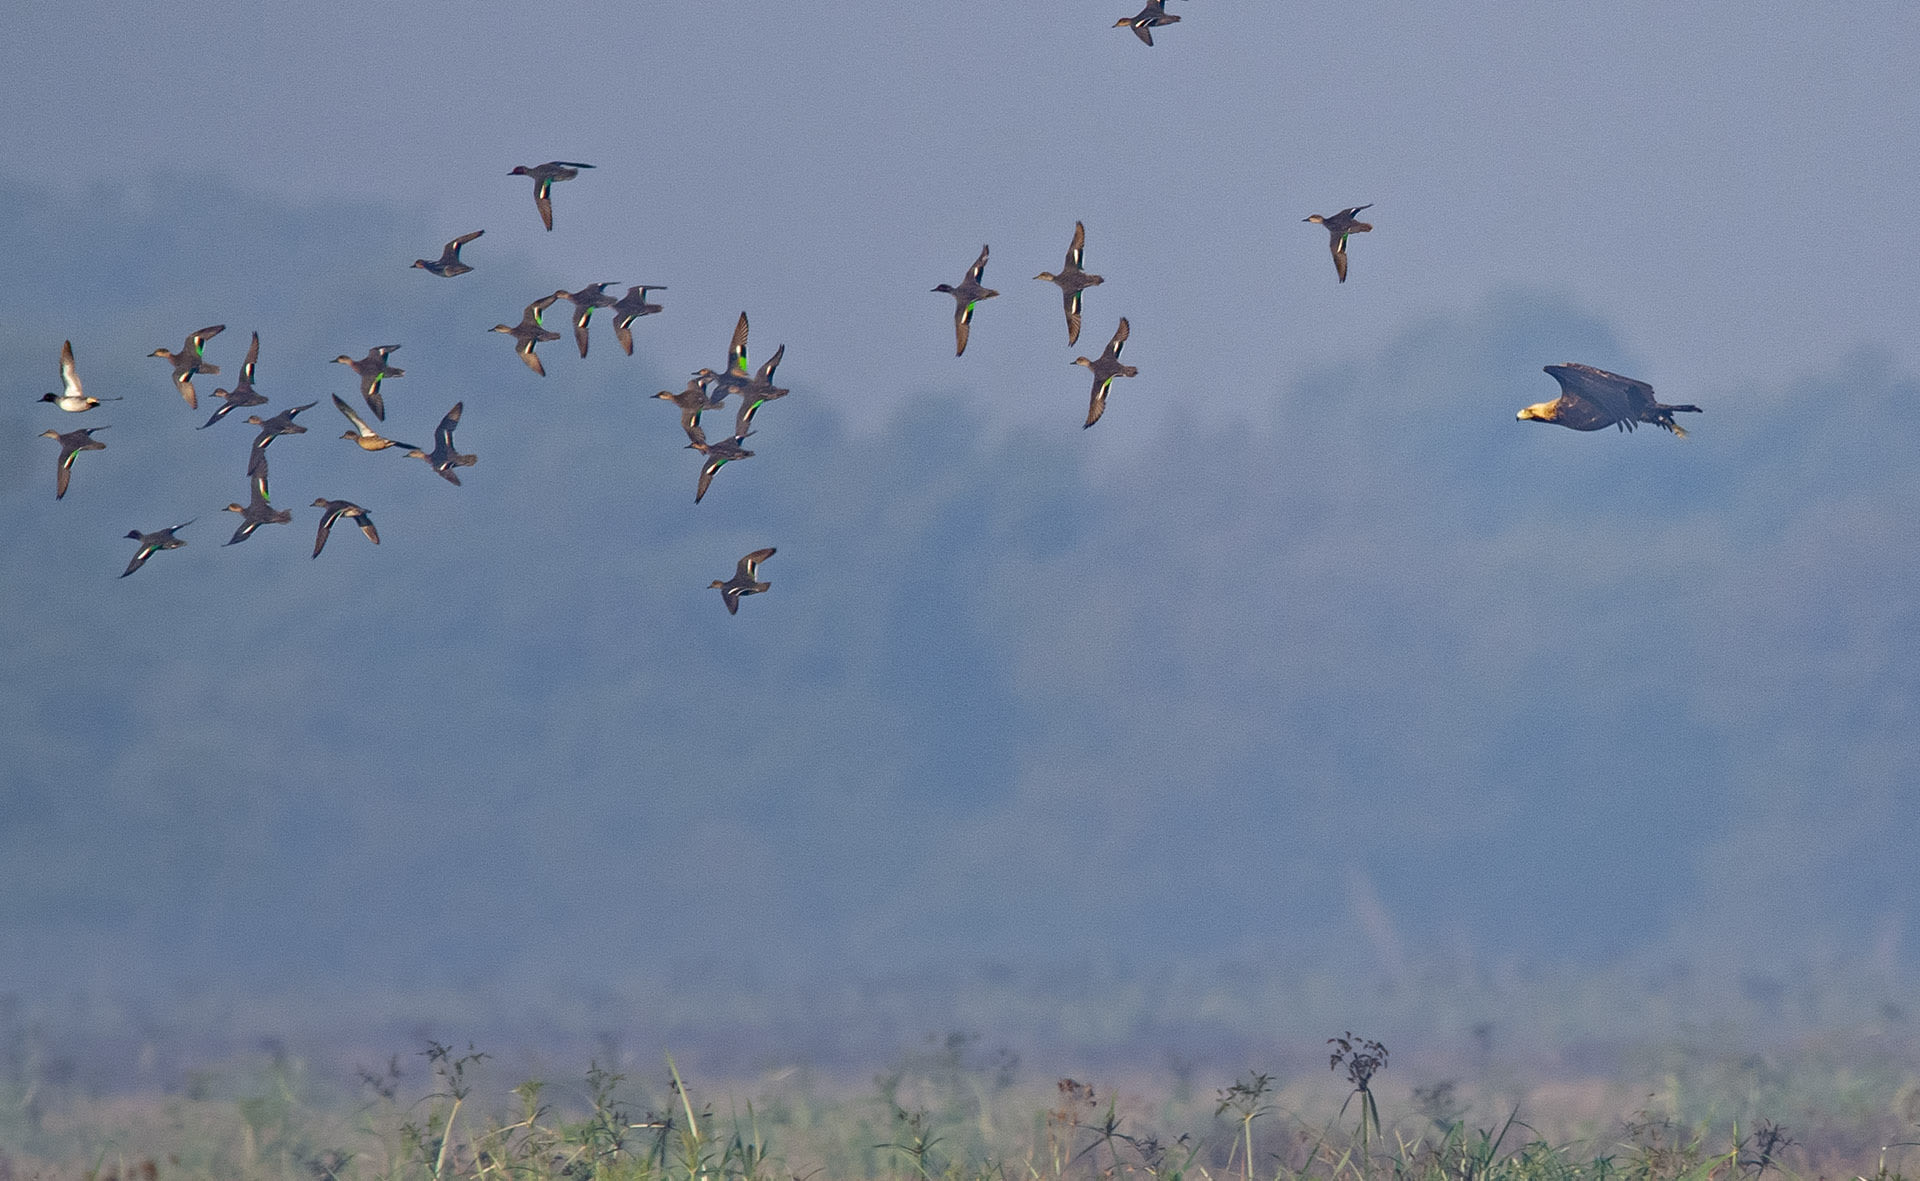 Bharatpur is a wintering site for the imperial eagle, seen here in pursuit of a flock of ducks. Prey is available in plenty for raptors and other birds during the winter months.